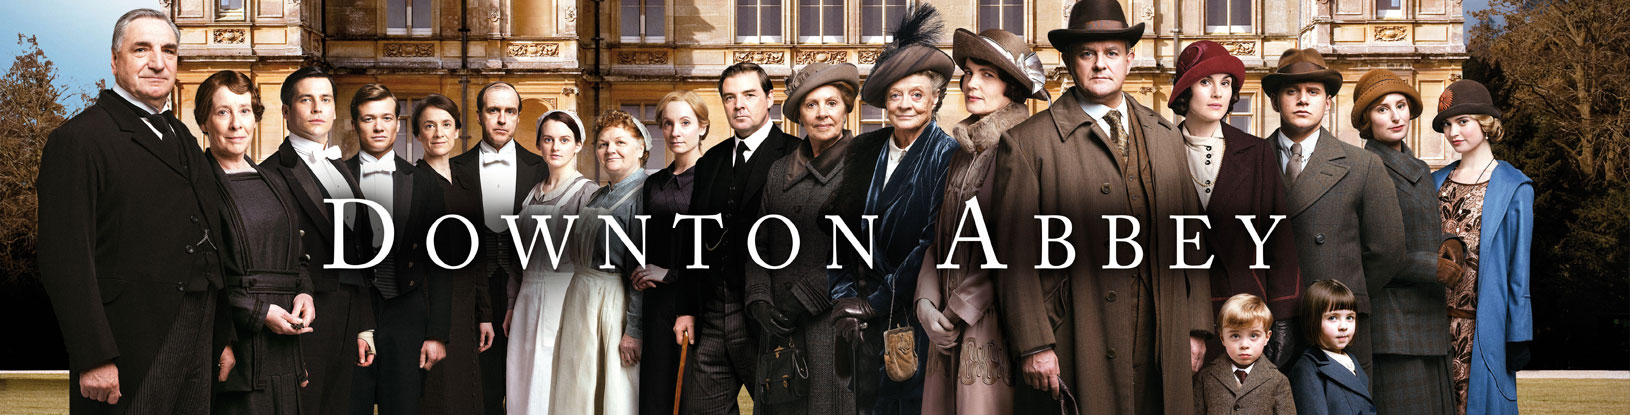 Downton Abbey Screening RSVP